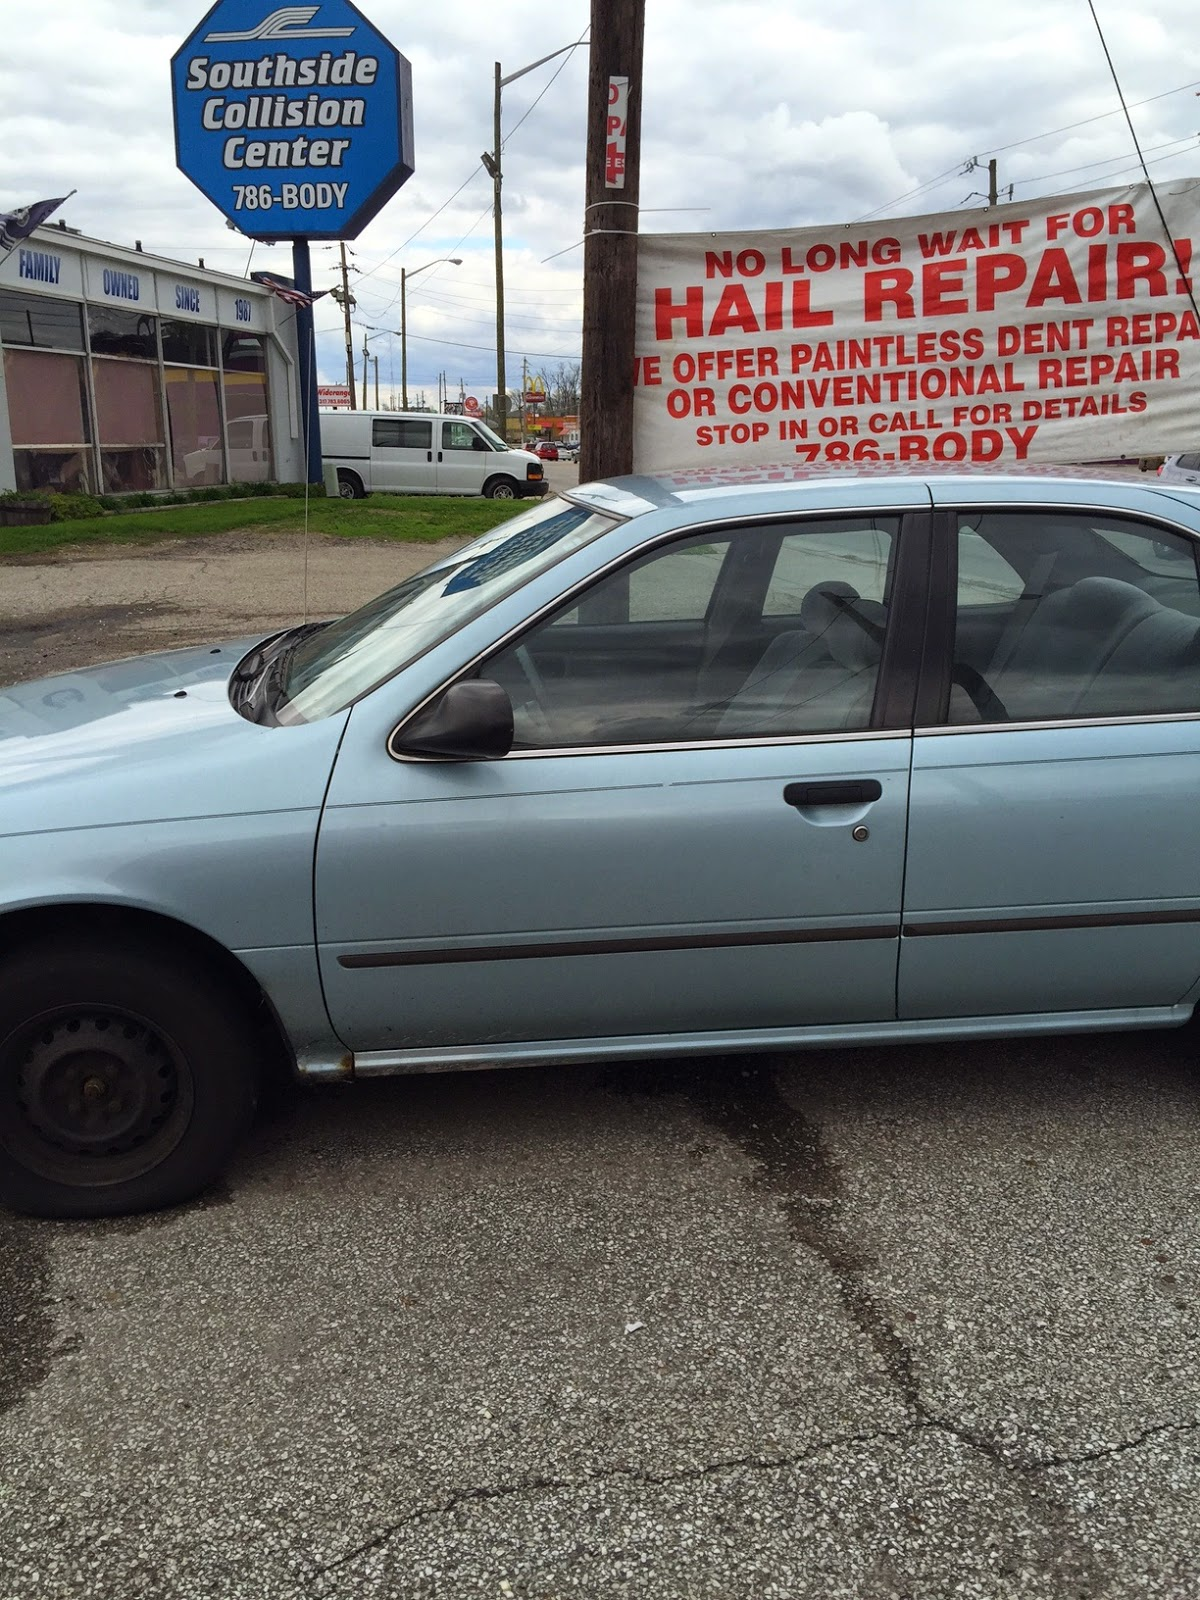 Junk Cars Indianapolis Sell your junk car without a title Indianapolis